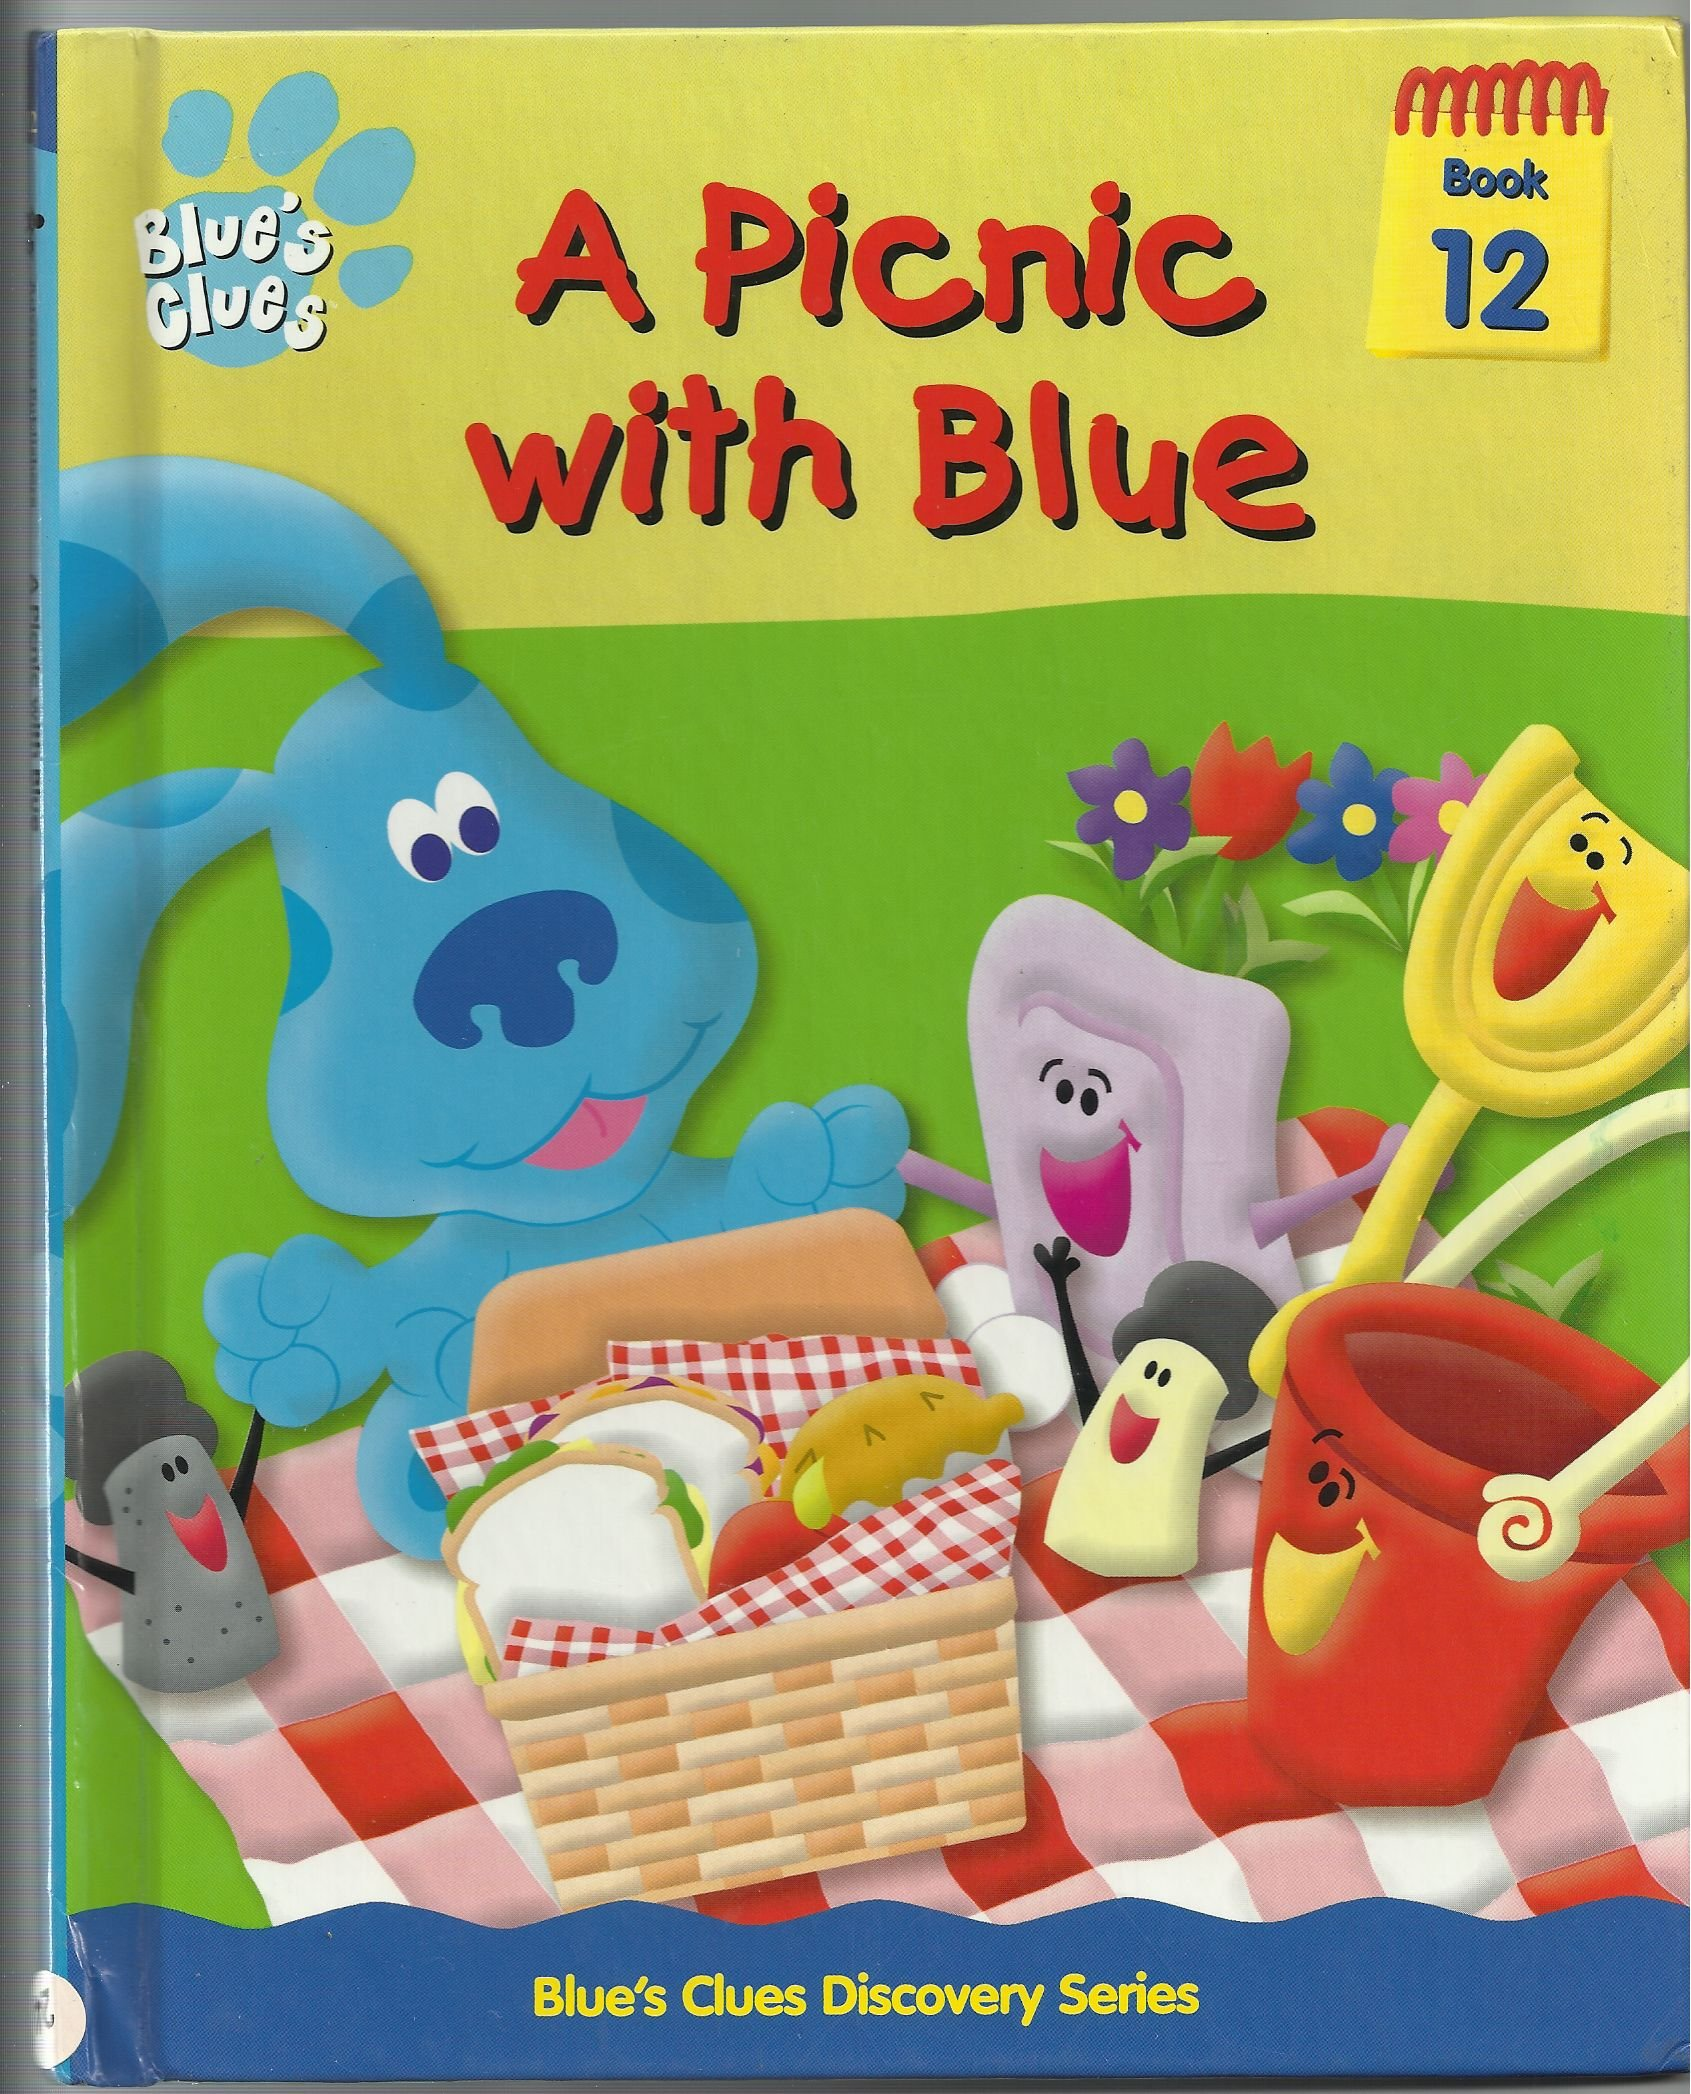 A Picnic with Blue/Gallery